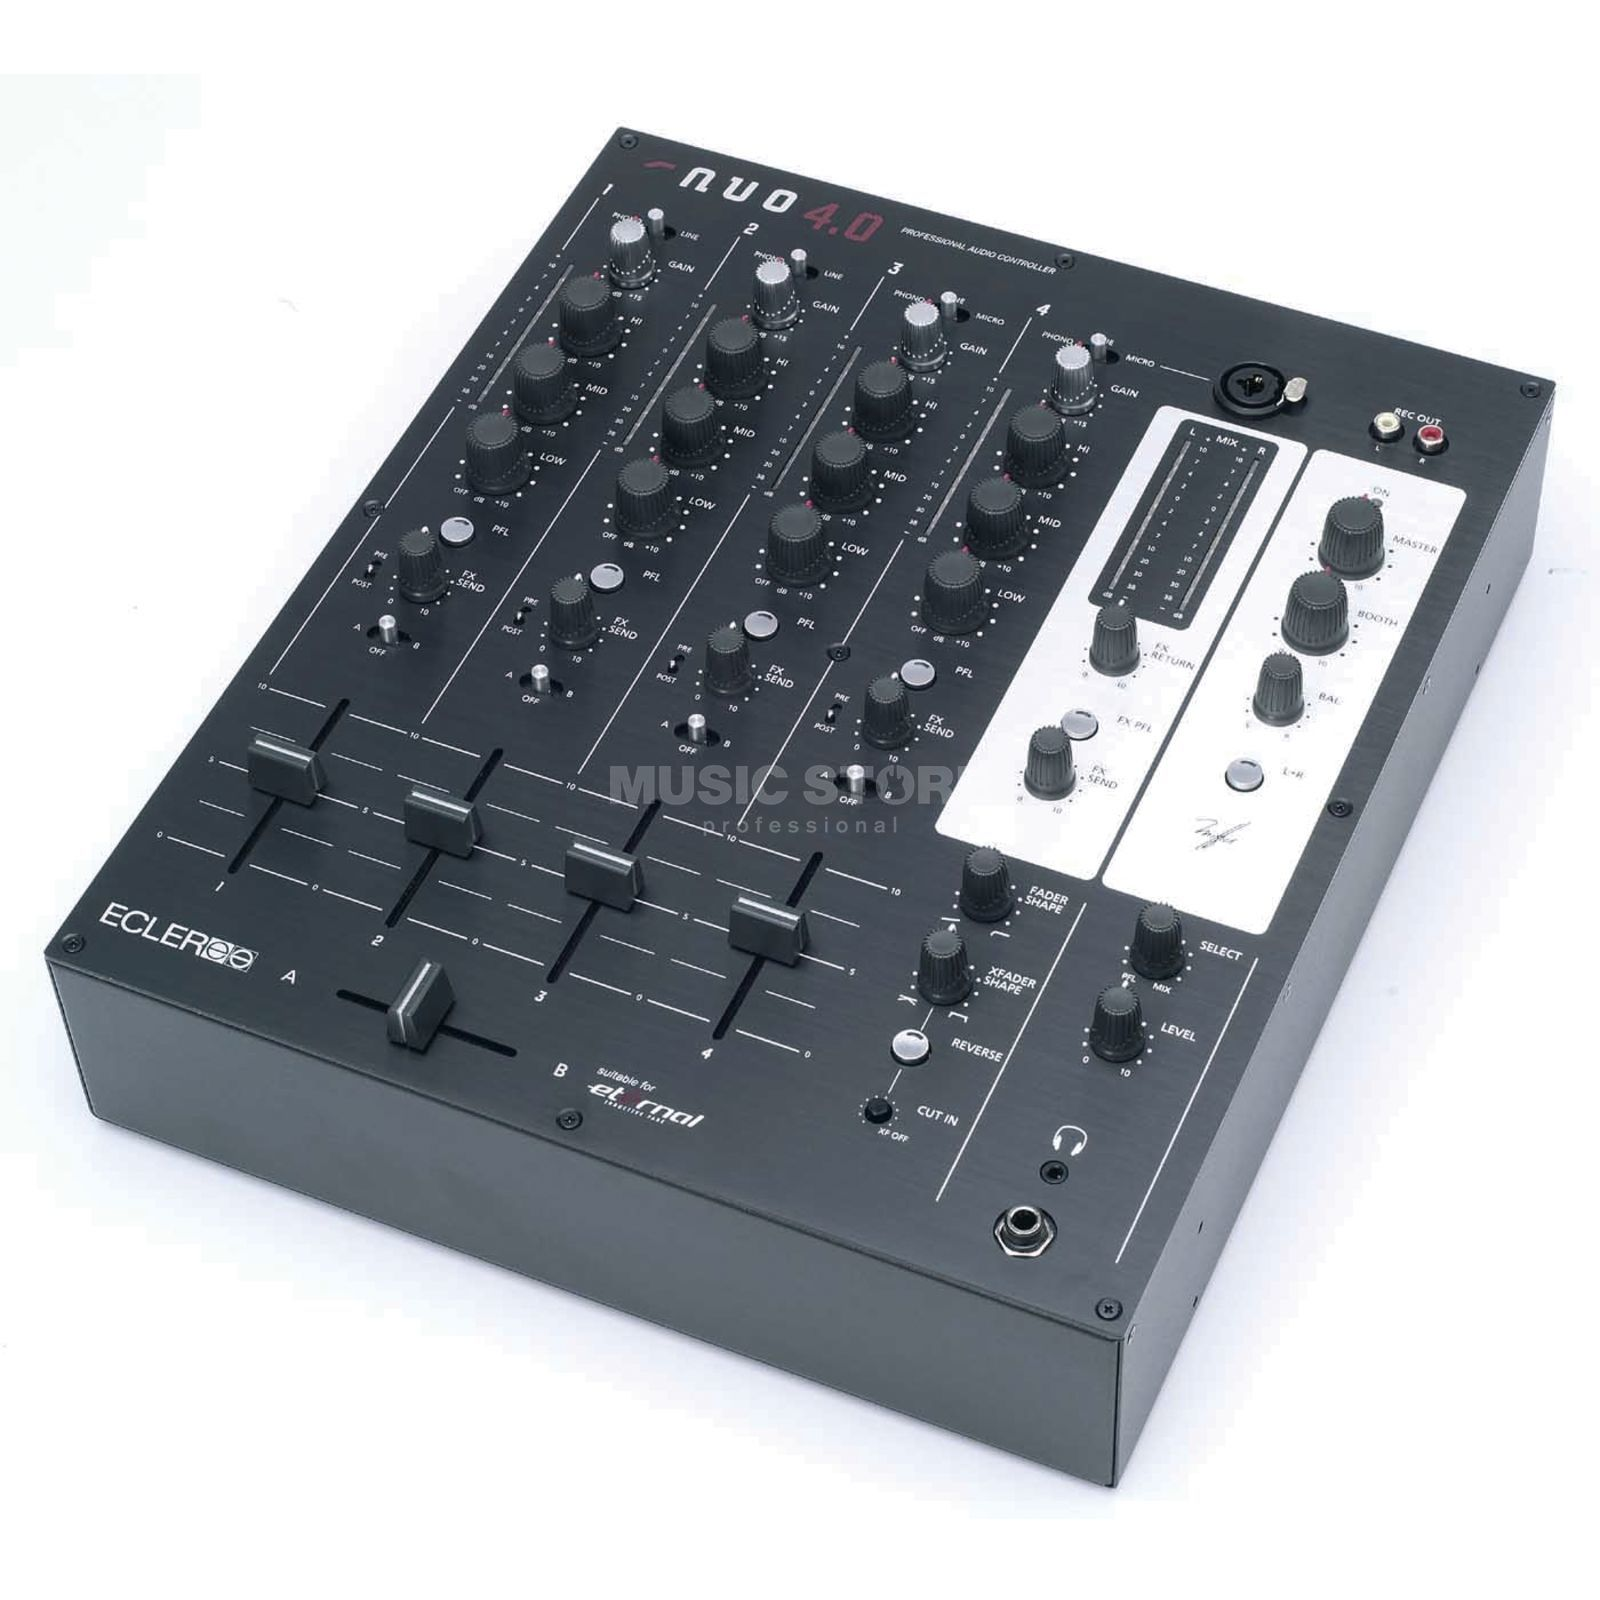 Ecler NUO 4.0 individual item 4-Channel DJ-Mixer Product Image